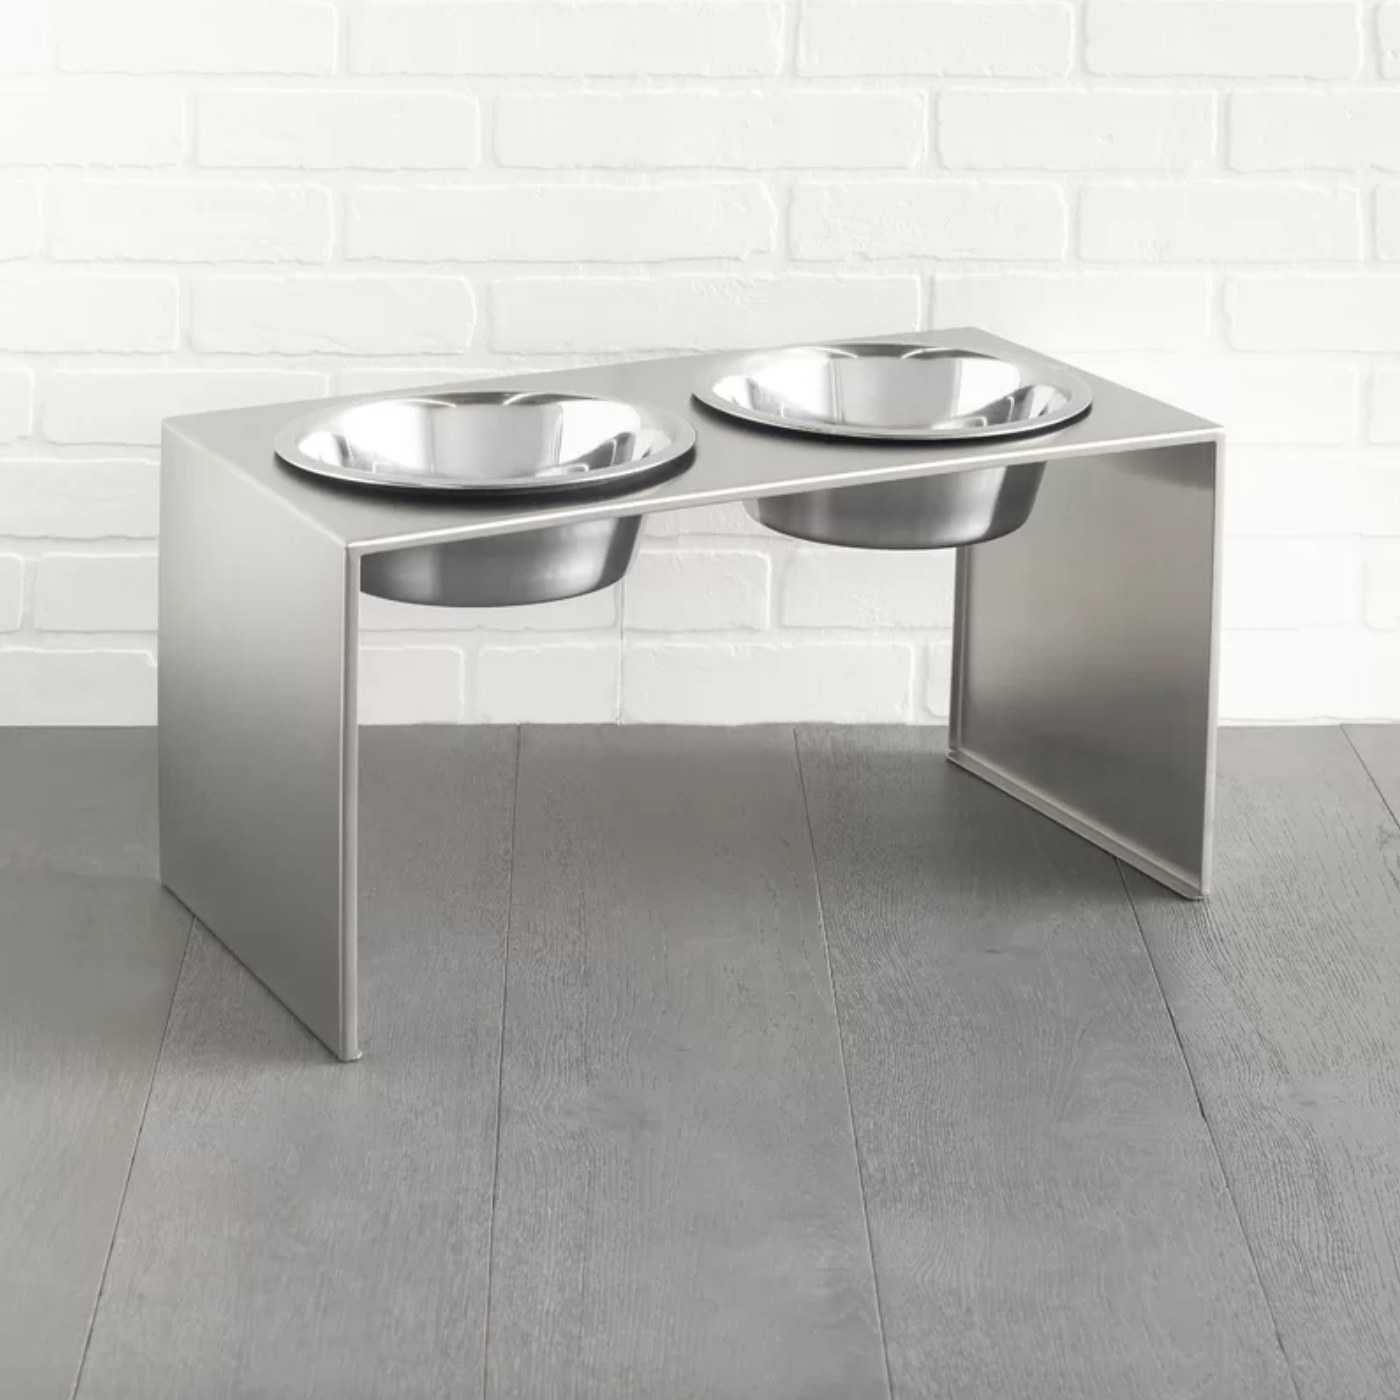 The stainless steel elevated feeder